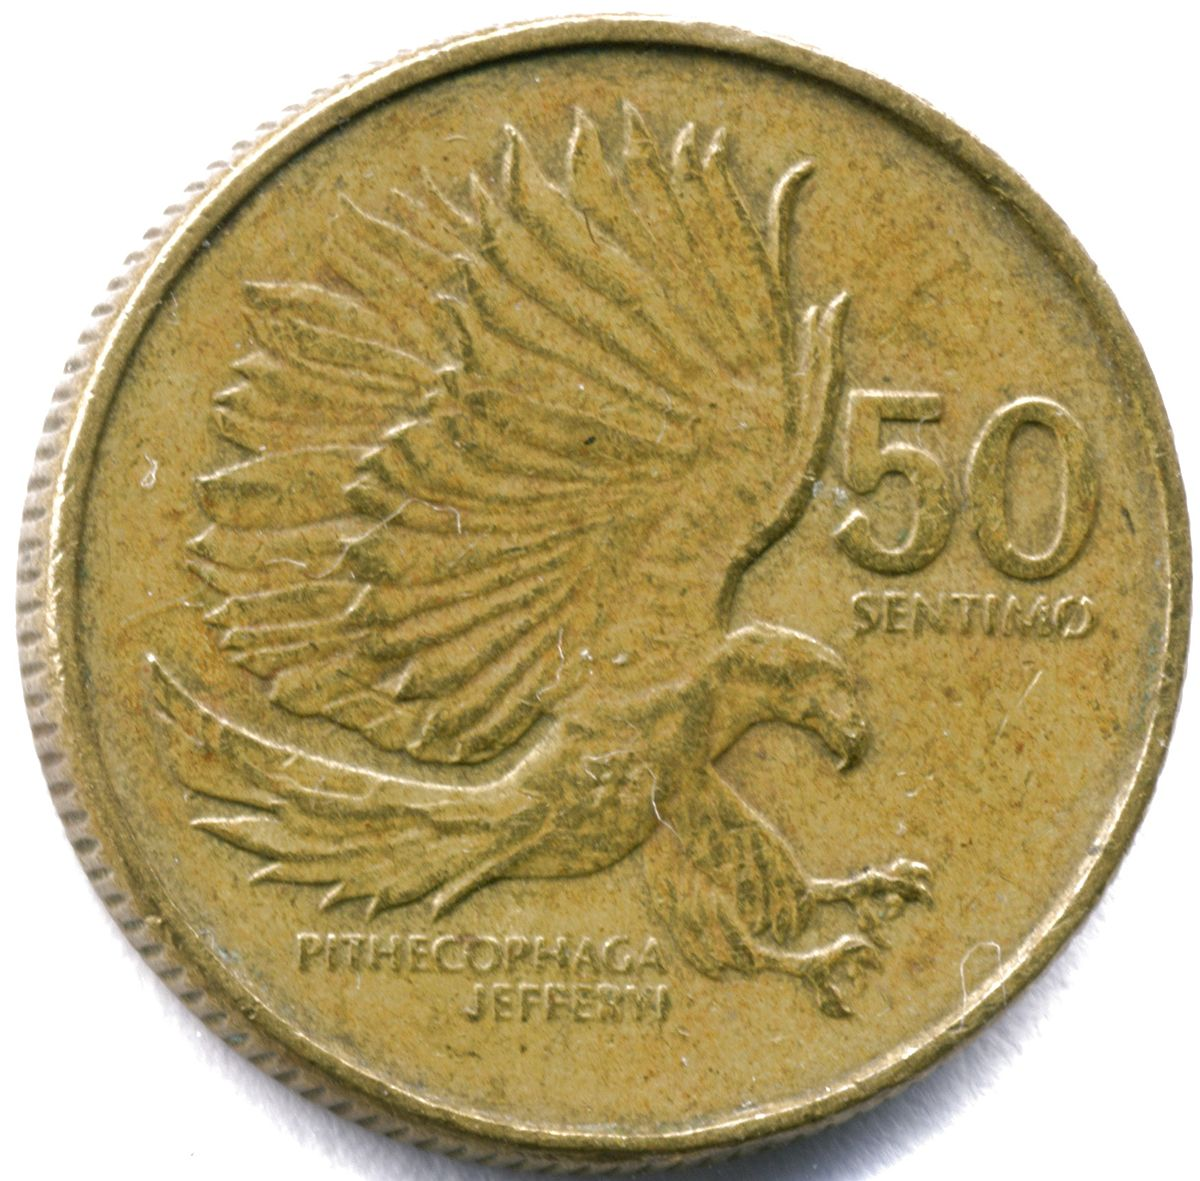 Coin Ph: Philippine Fifty Centavo Coin